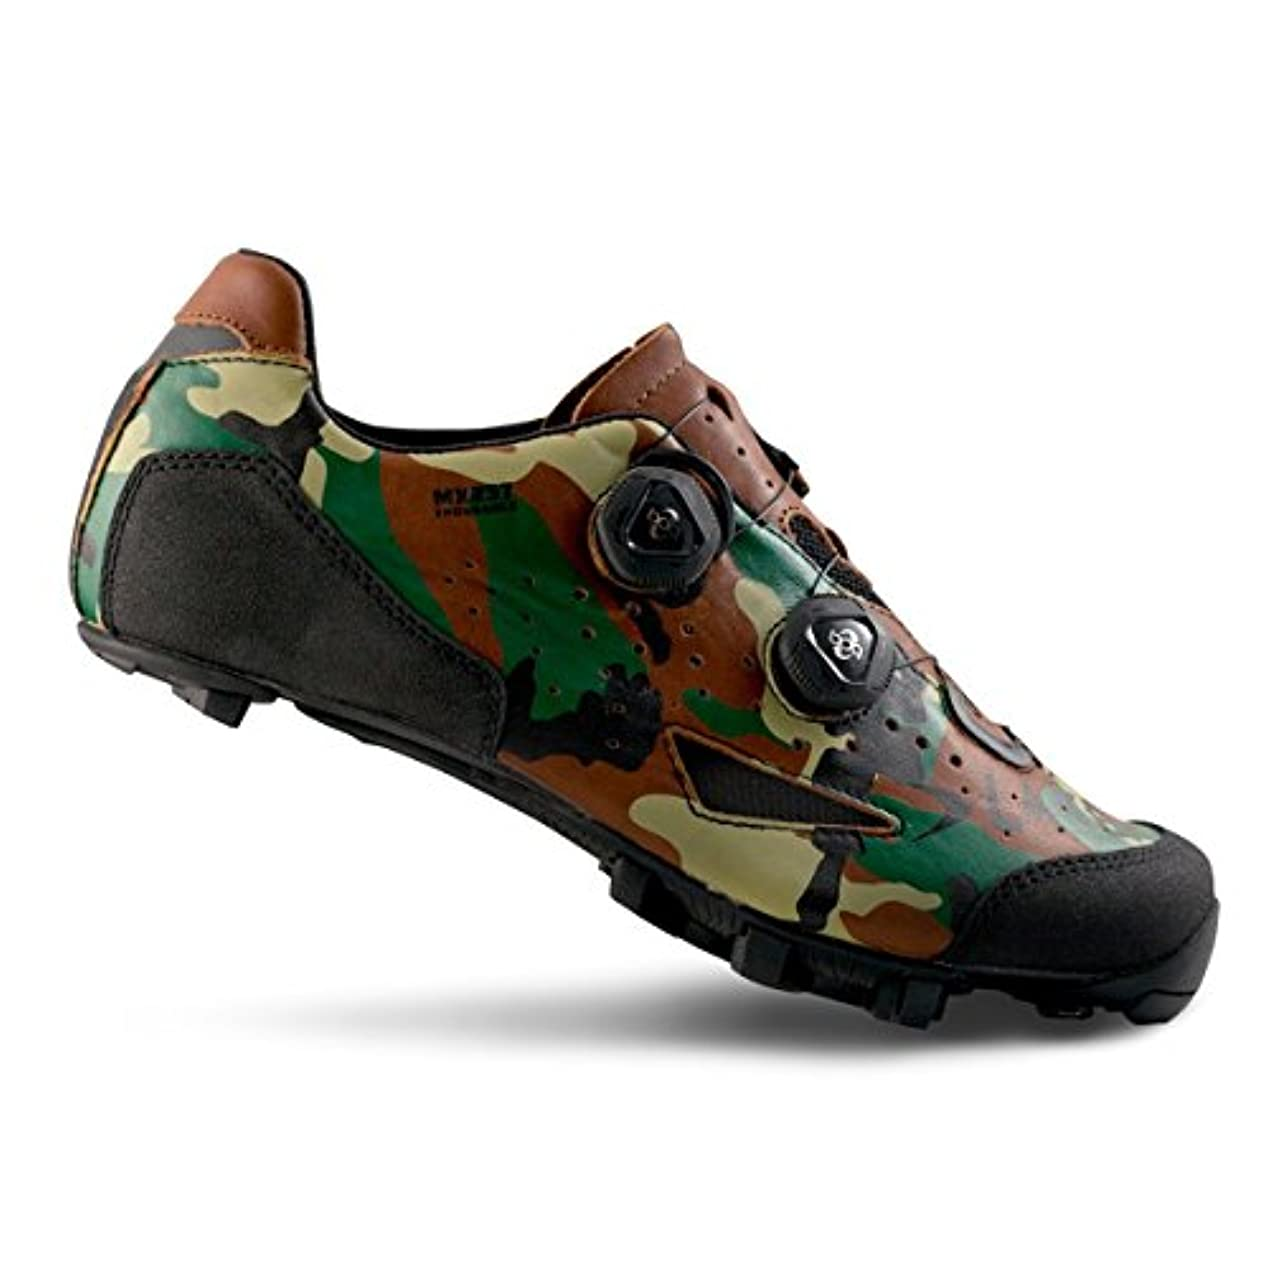 除去着るトランクLake mx237 Endurance Cycling Shoe – Wide – Men 's Camoフォレスト、43.5